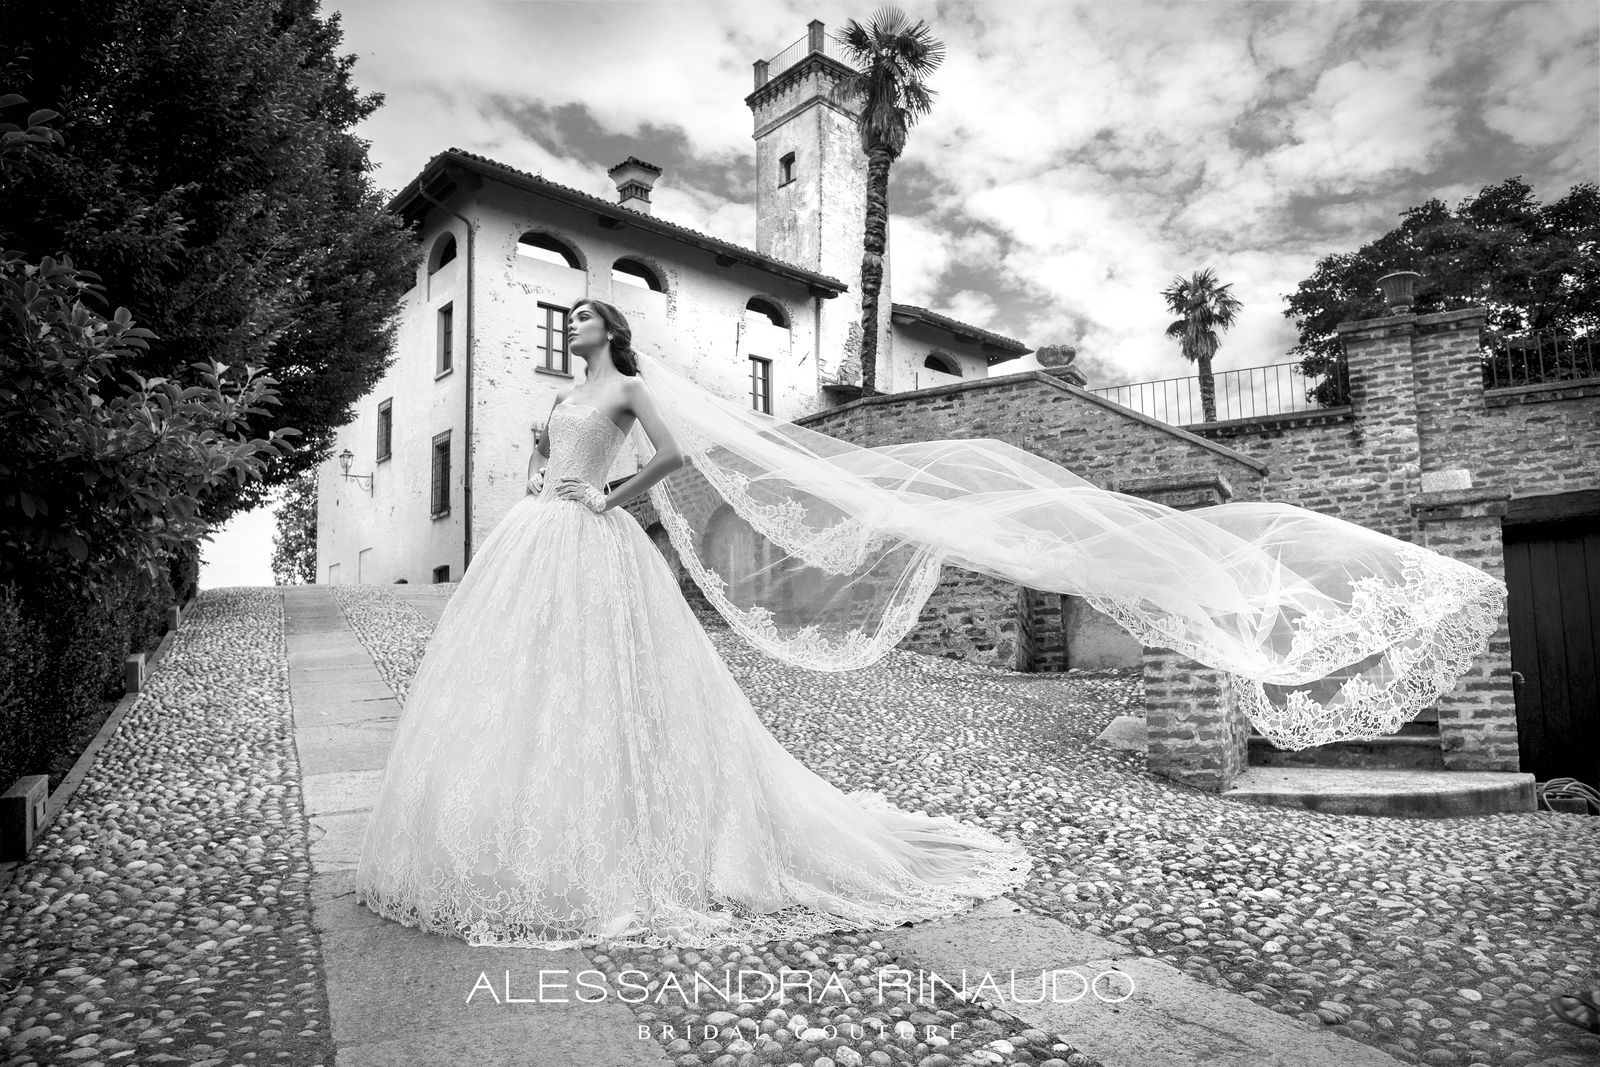 La quintessenza dell'eleganza. Dettagli di alta sartorialità. Bridal Collection